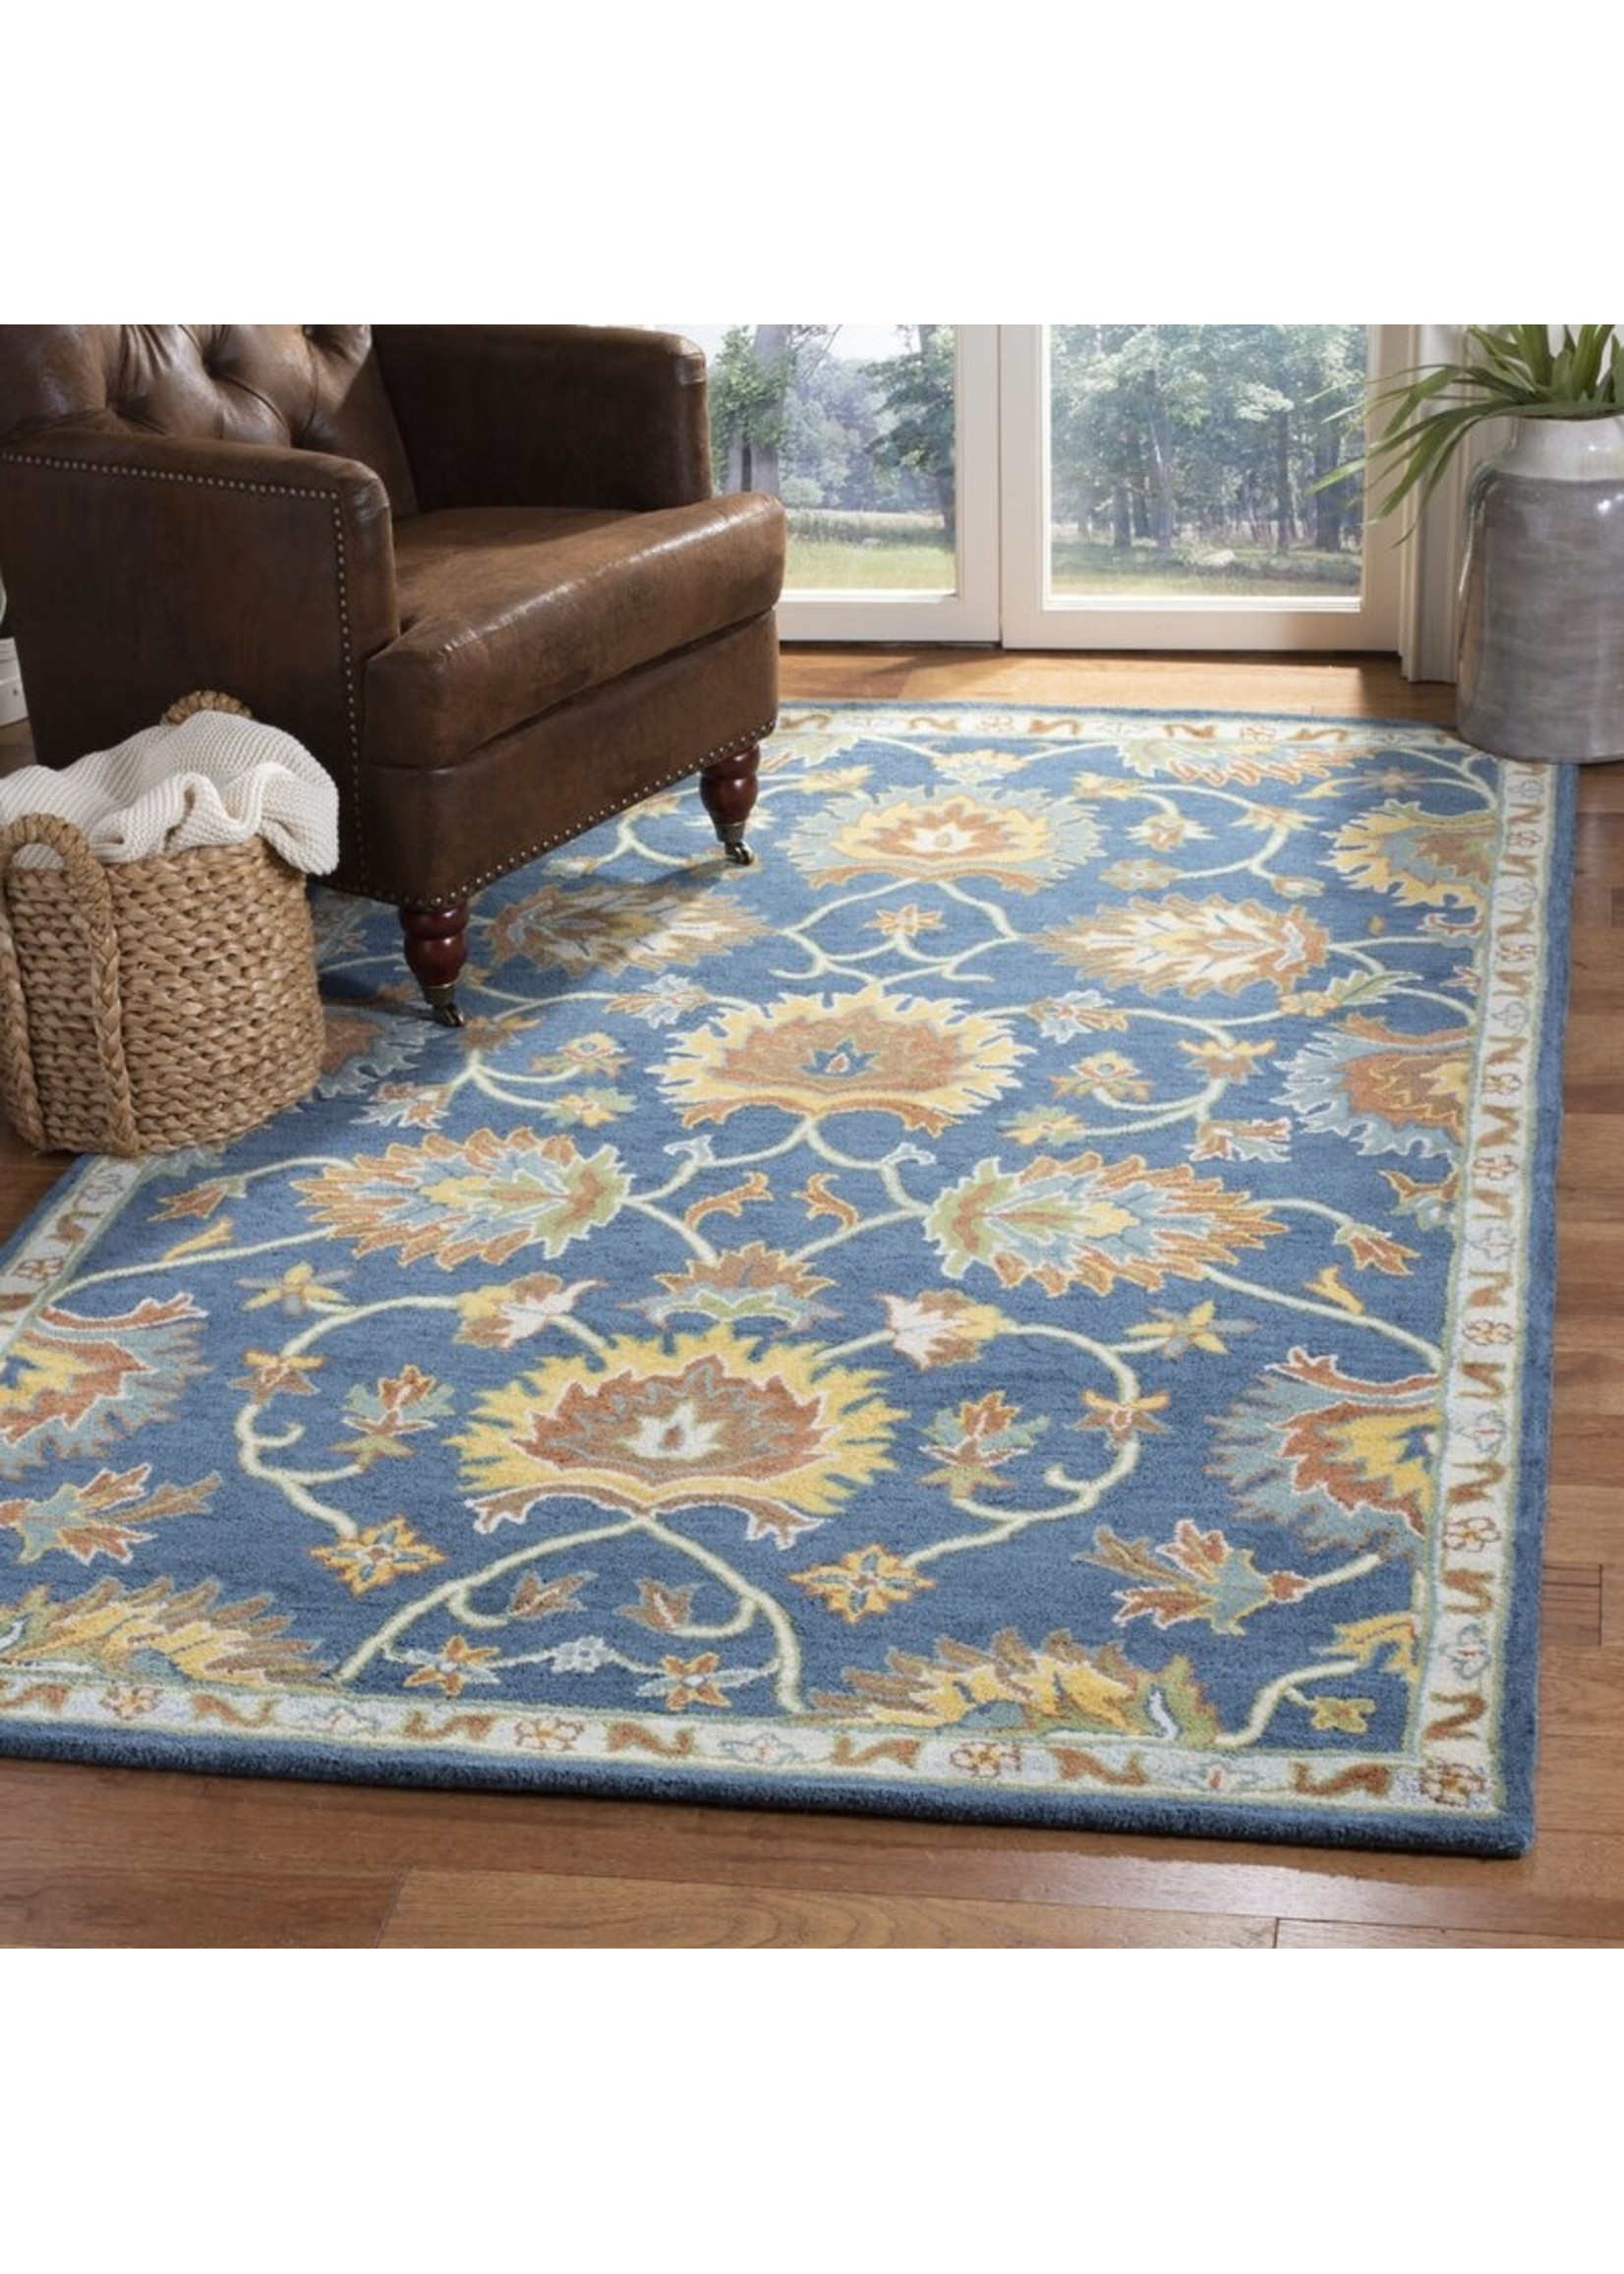 *3' x 5' - Cranmore Hand-Tufted Wool Brown/Blue Area Rug